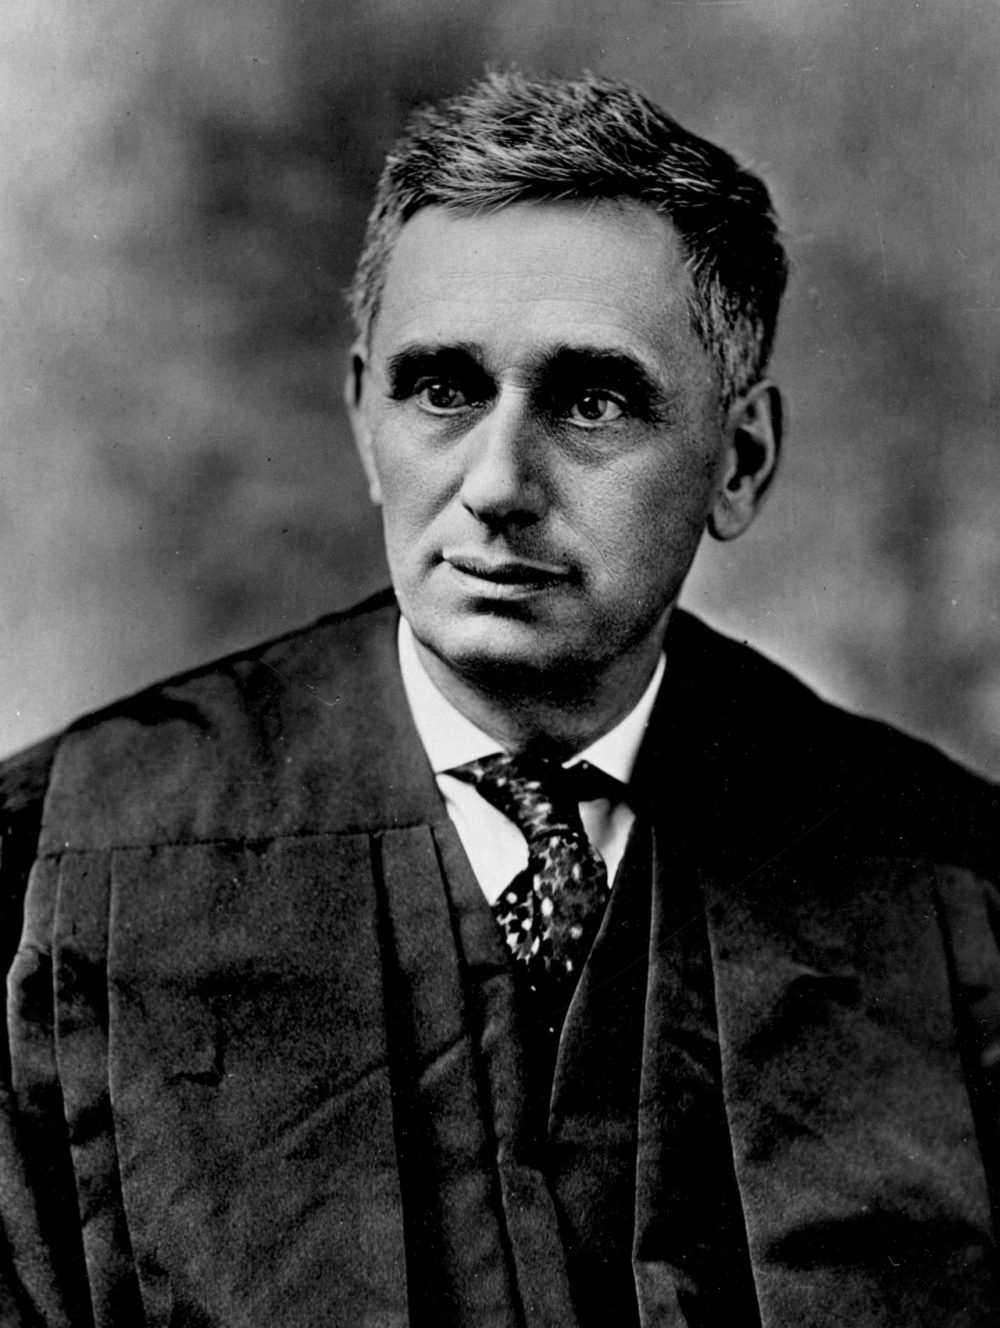 U.S. Supreme Court Justice Louis D. Brandeis served as an associate justice of the Supreme Court from 1916 to 1939. (AP Photo)